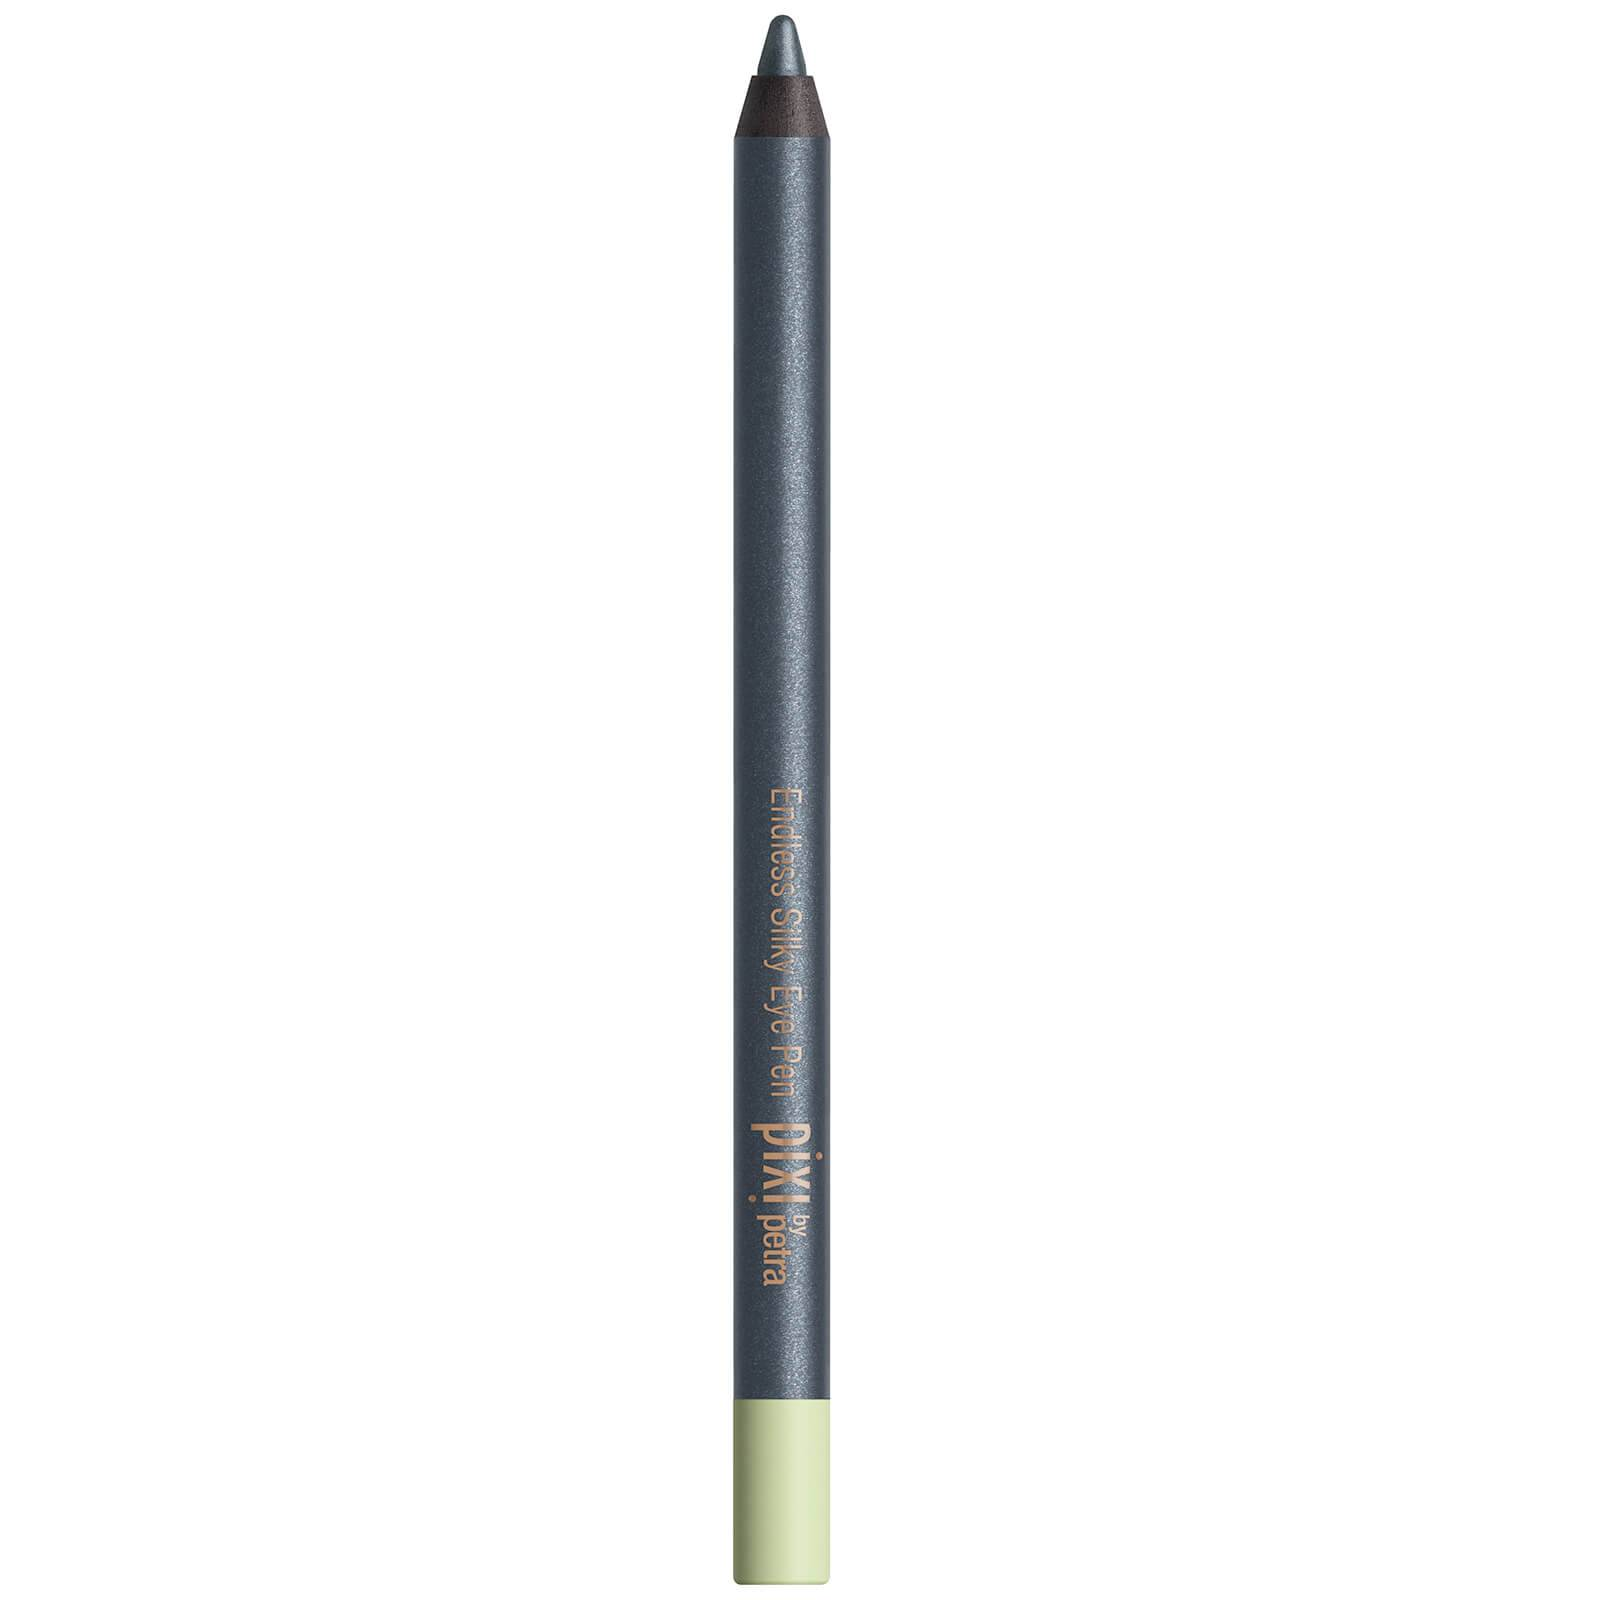 Pixi Endless Silky Eye Crayon pourles yeux - Jeweled Pewter